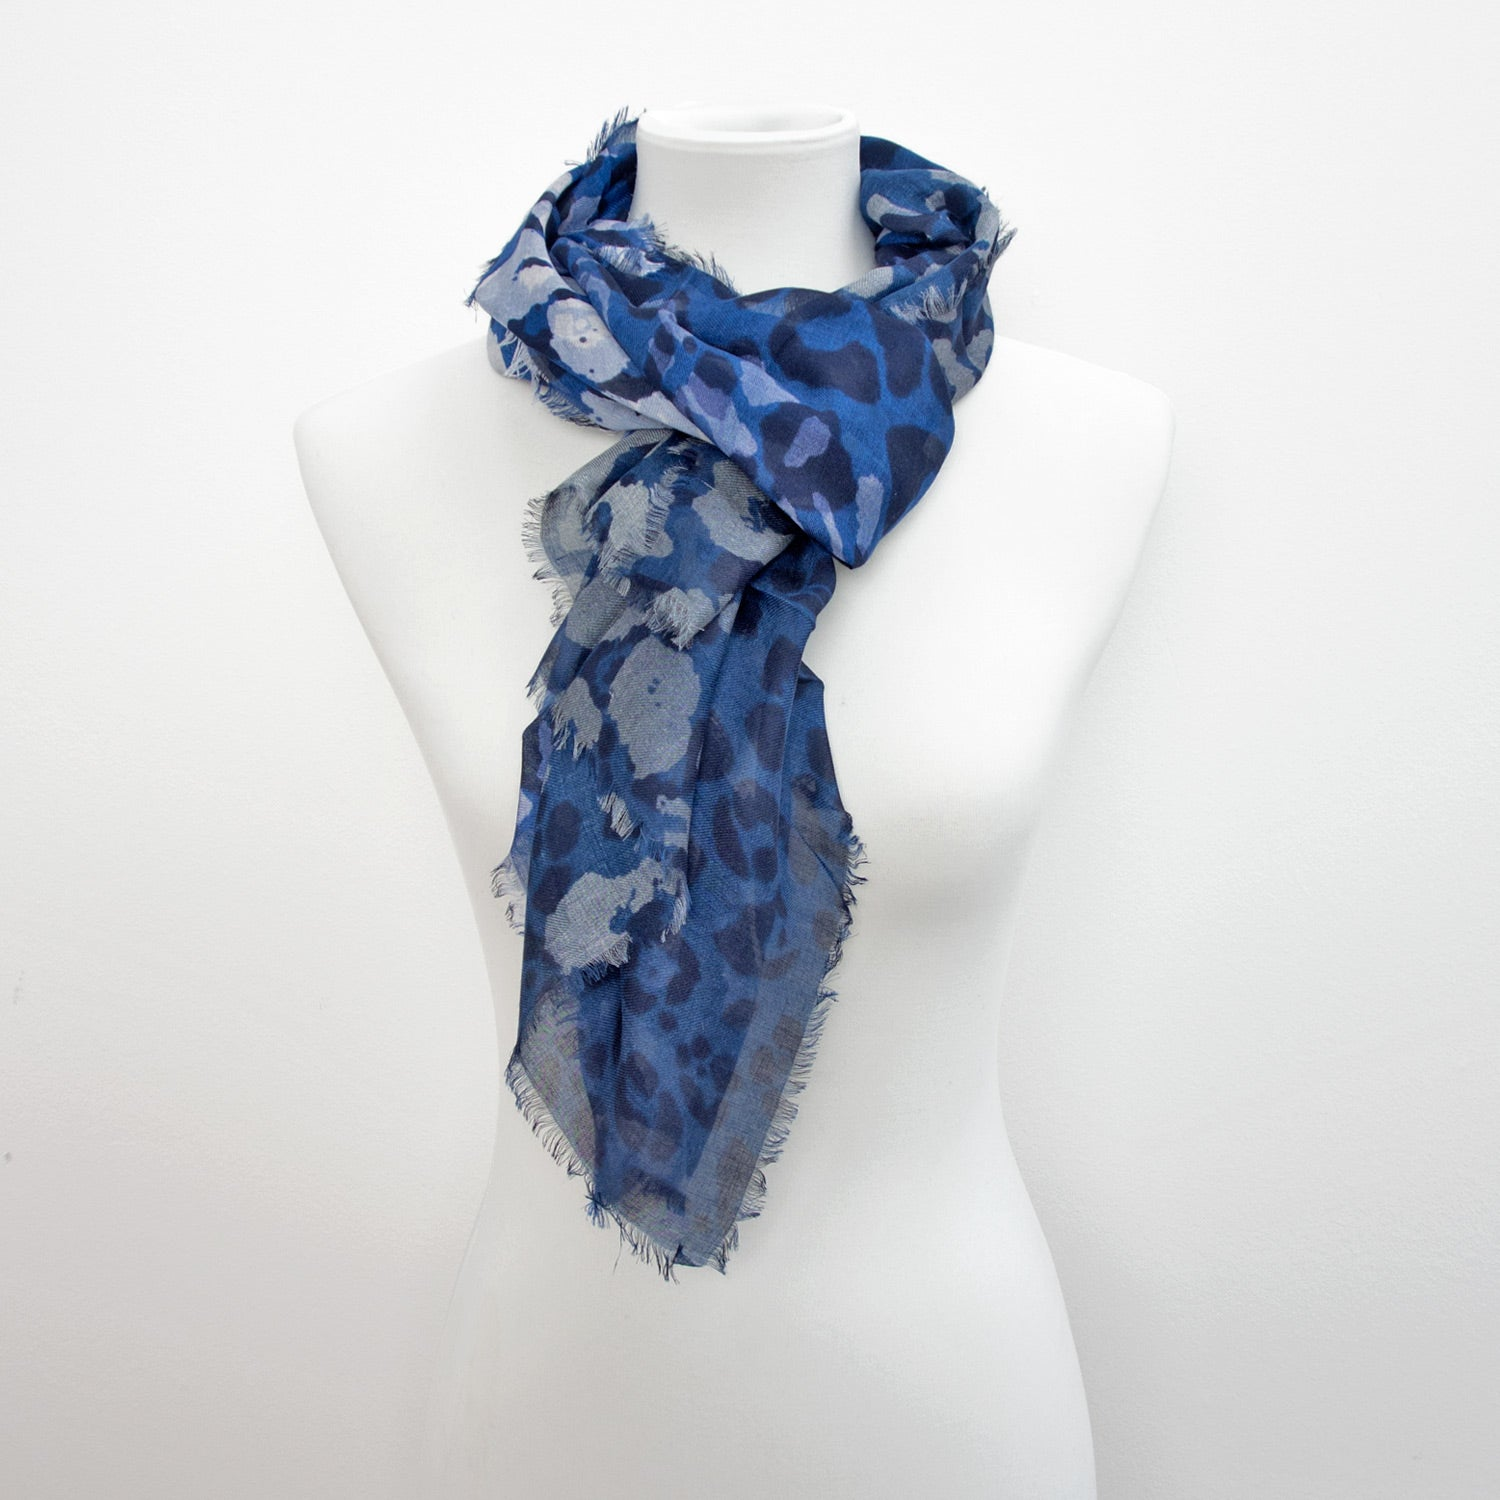 Doria & Dojola Camouflage Cashmere-Modal Scarf. 85% Modal 15% Cashmere  67 x 176 cm. 100% Made in Italy. Pictured in Blue.